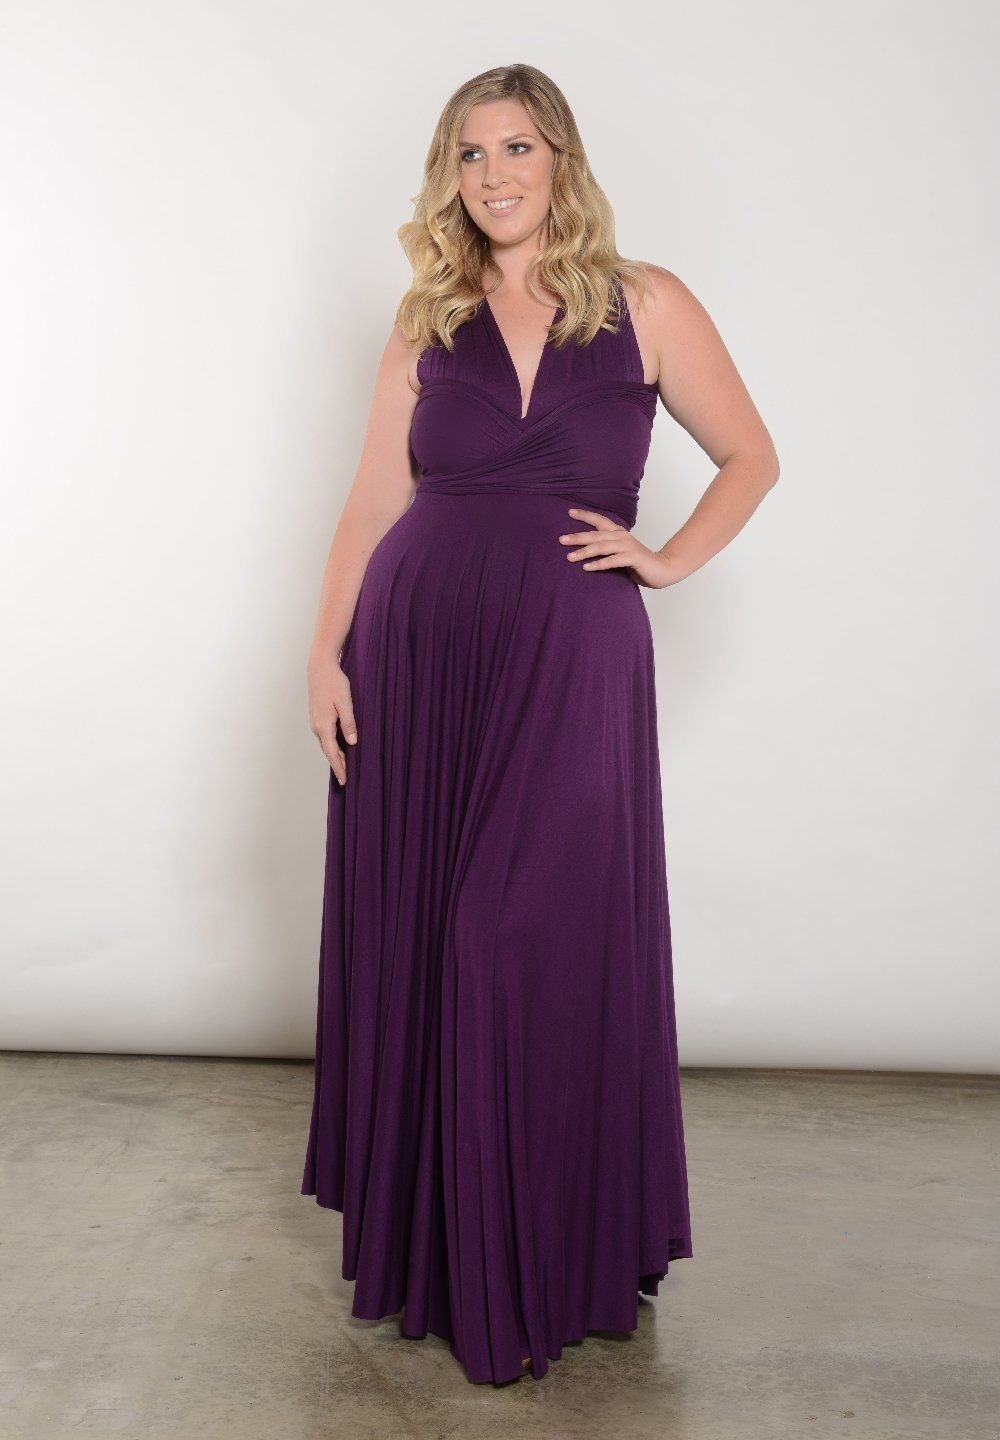 Eternity Maxi Convertible Dress | New Plus Size Clothing at SWAK ...